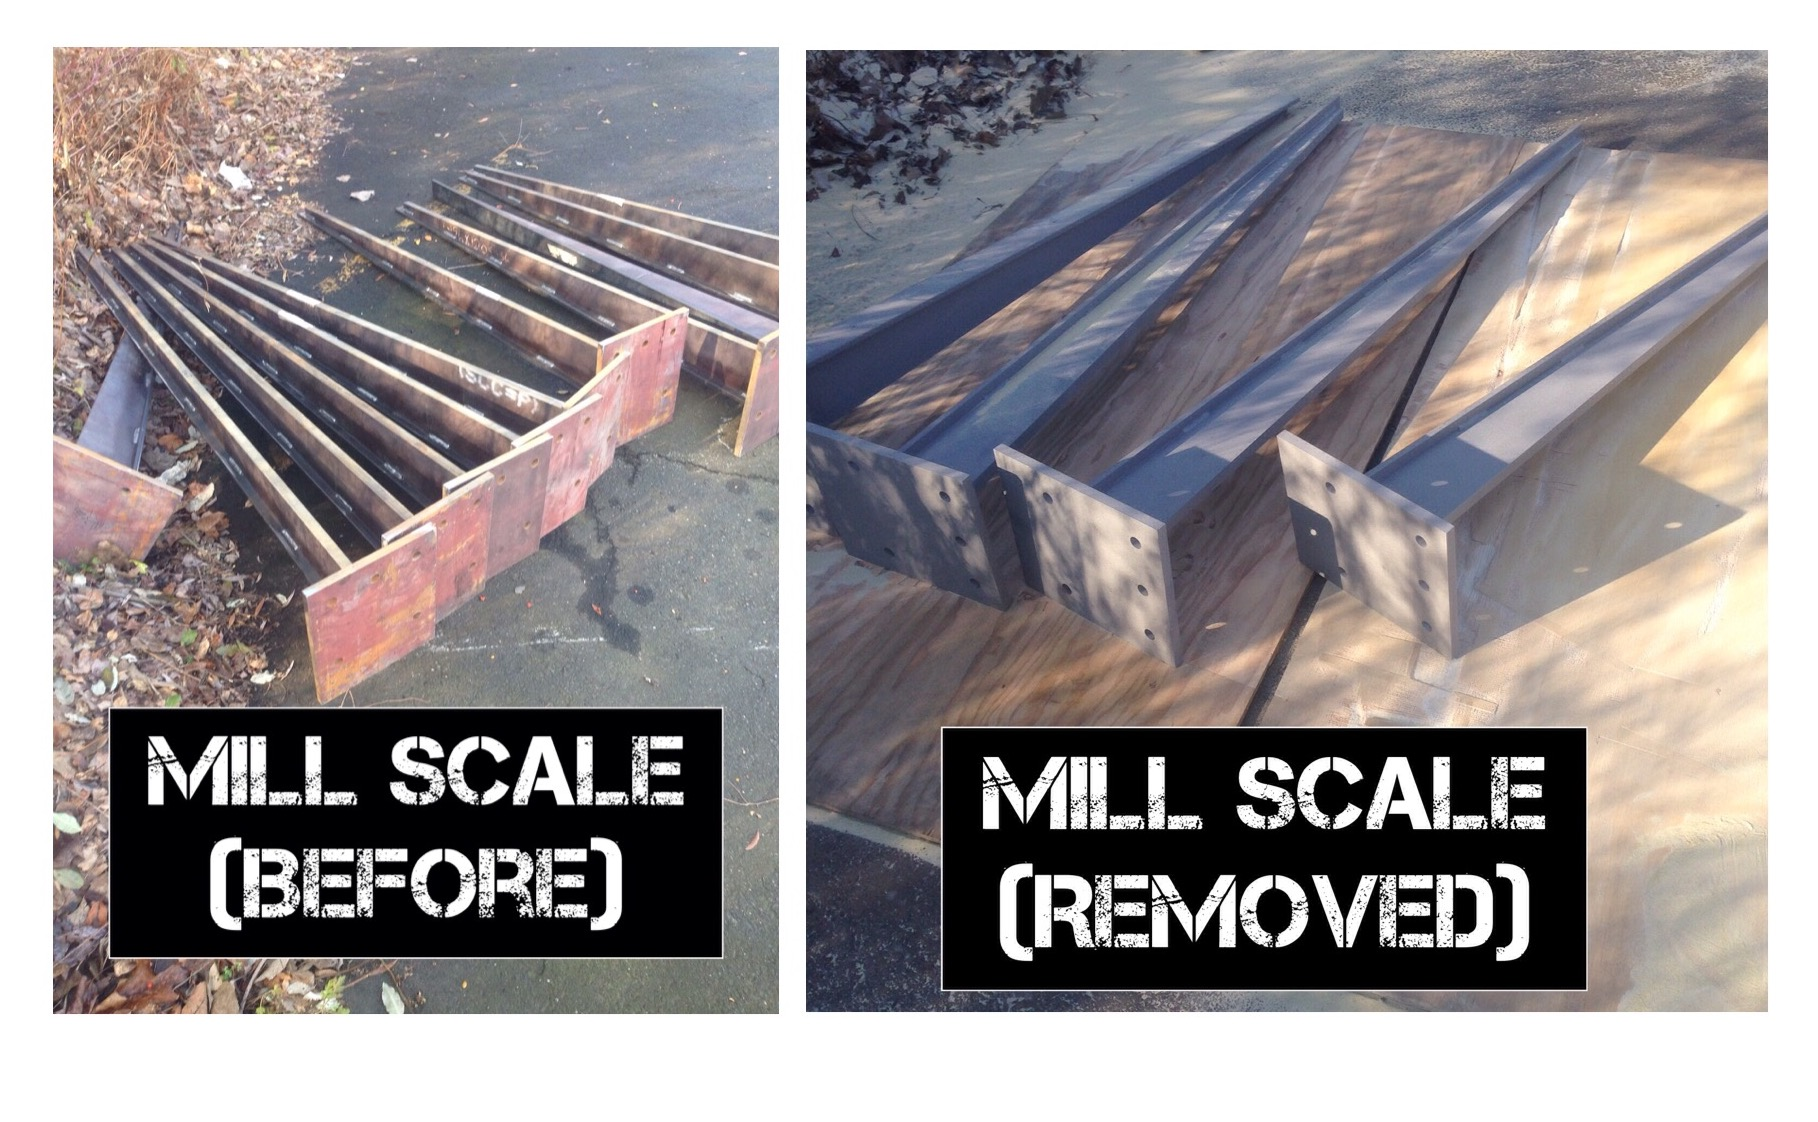 How to remove scale